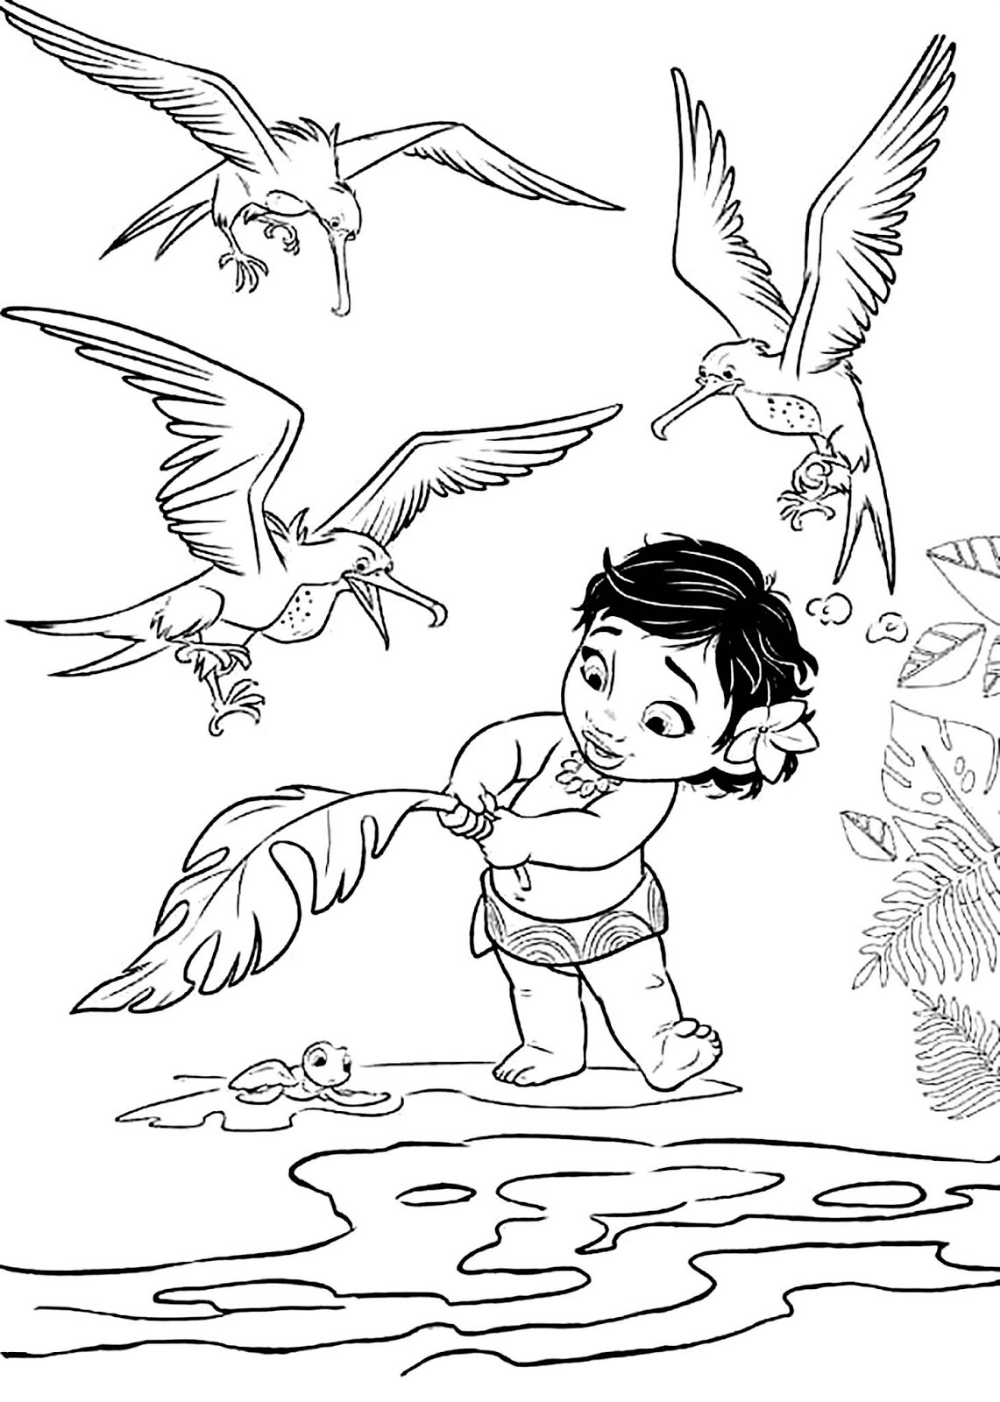 61 Coloring Sheet Moana Disney Coloring Pages In 2020